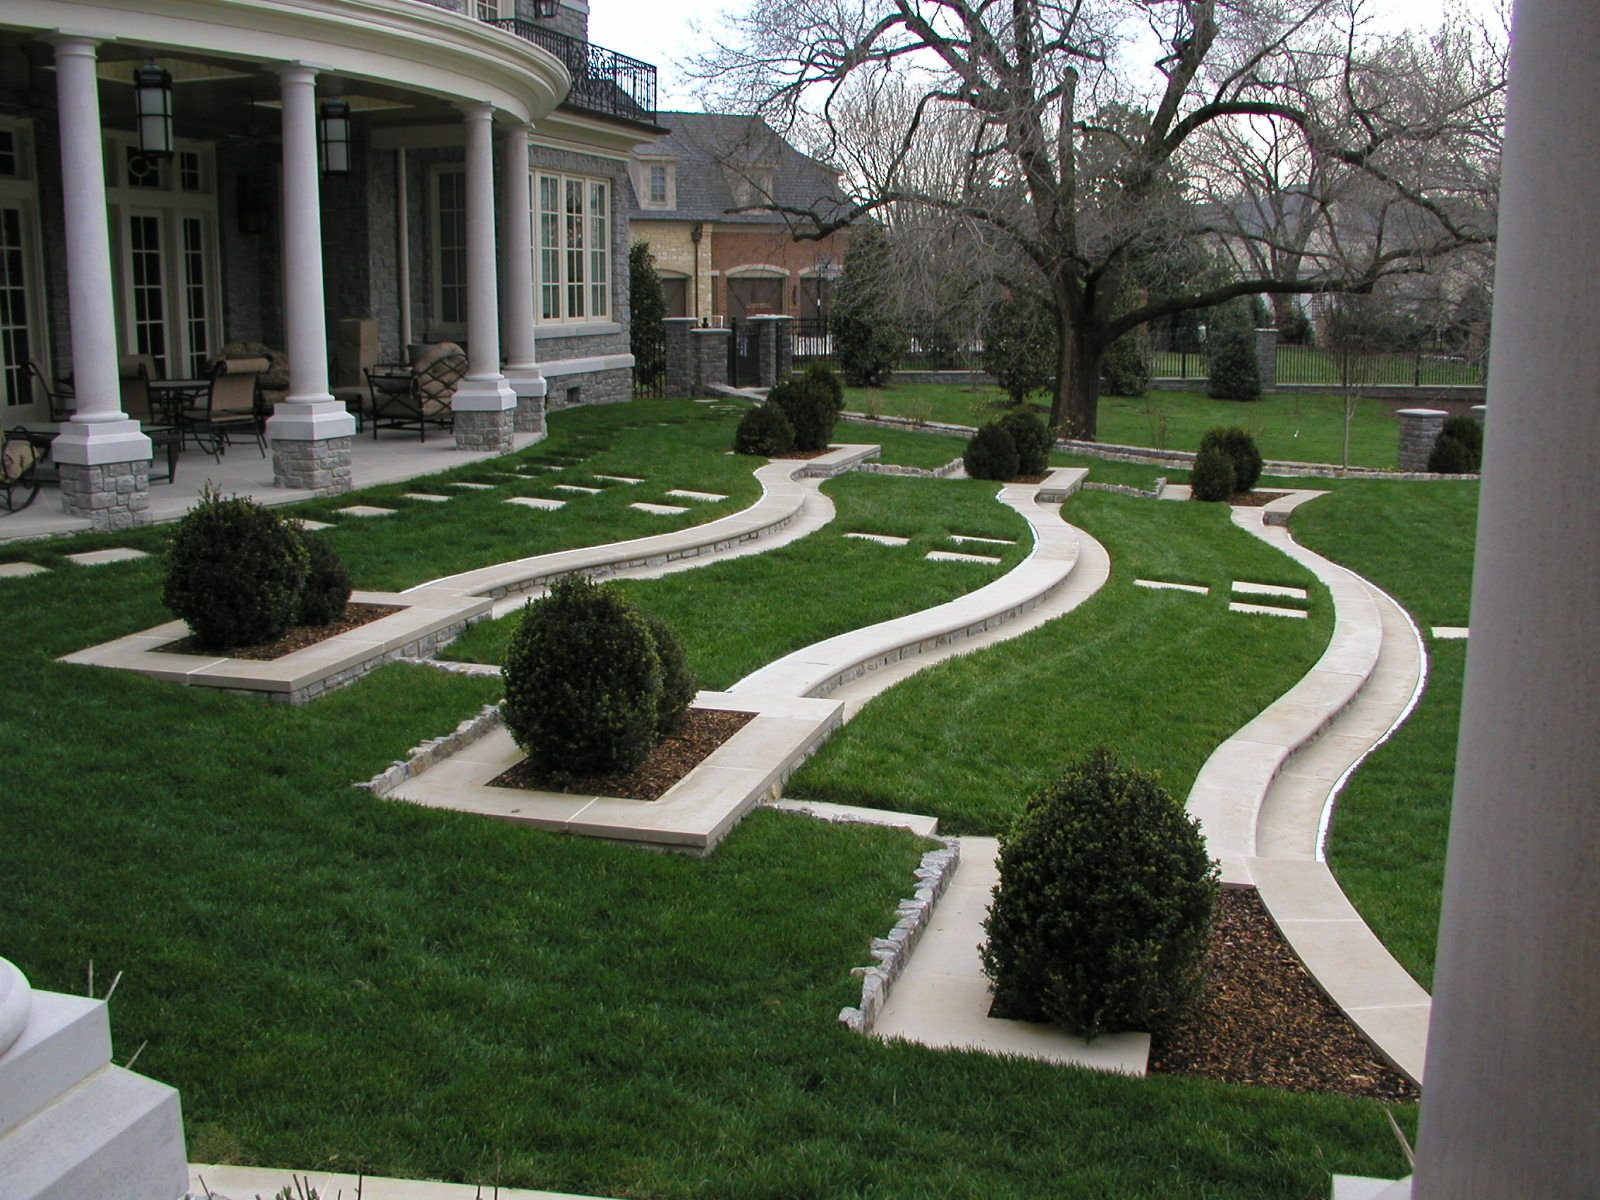 Perfect Awesome Landscaping Plans With Front Yard Landscaping Plans And Backyard  Landscaping Plans : Wonderful Landscaping Plans With Tiered Lawn An. Part 29